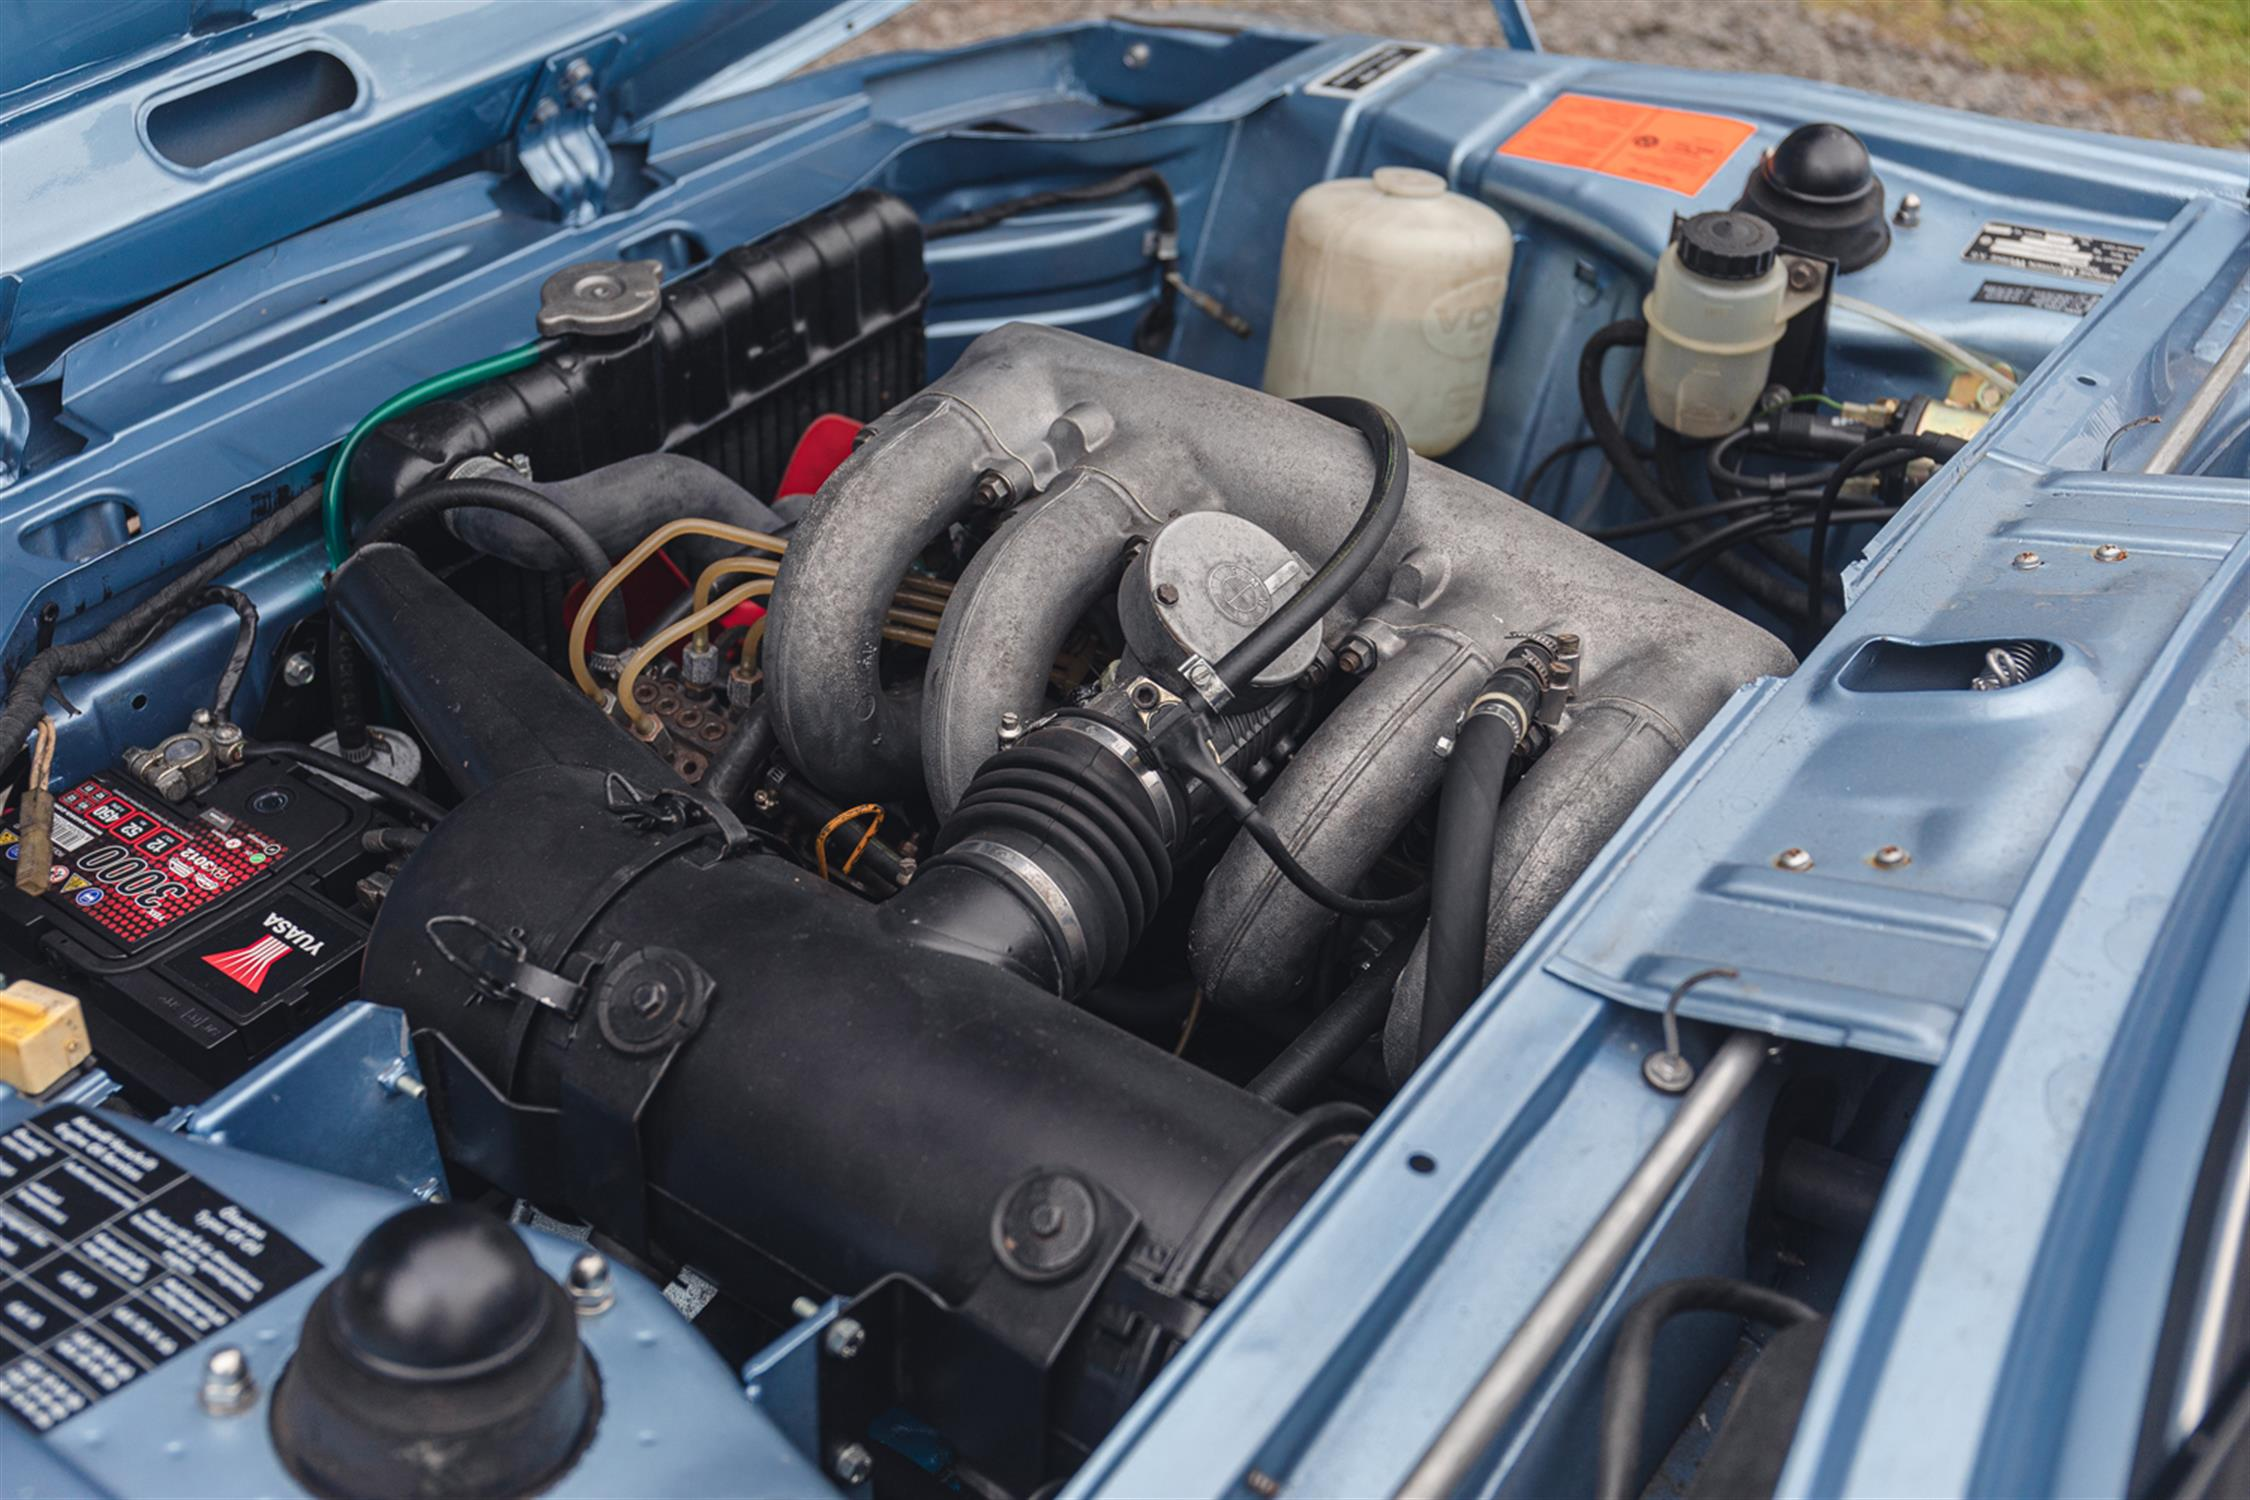 1975 BMW 2002 Tii - Image 4 of 10